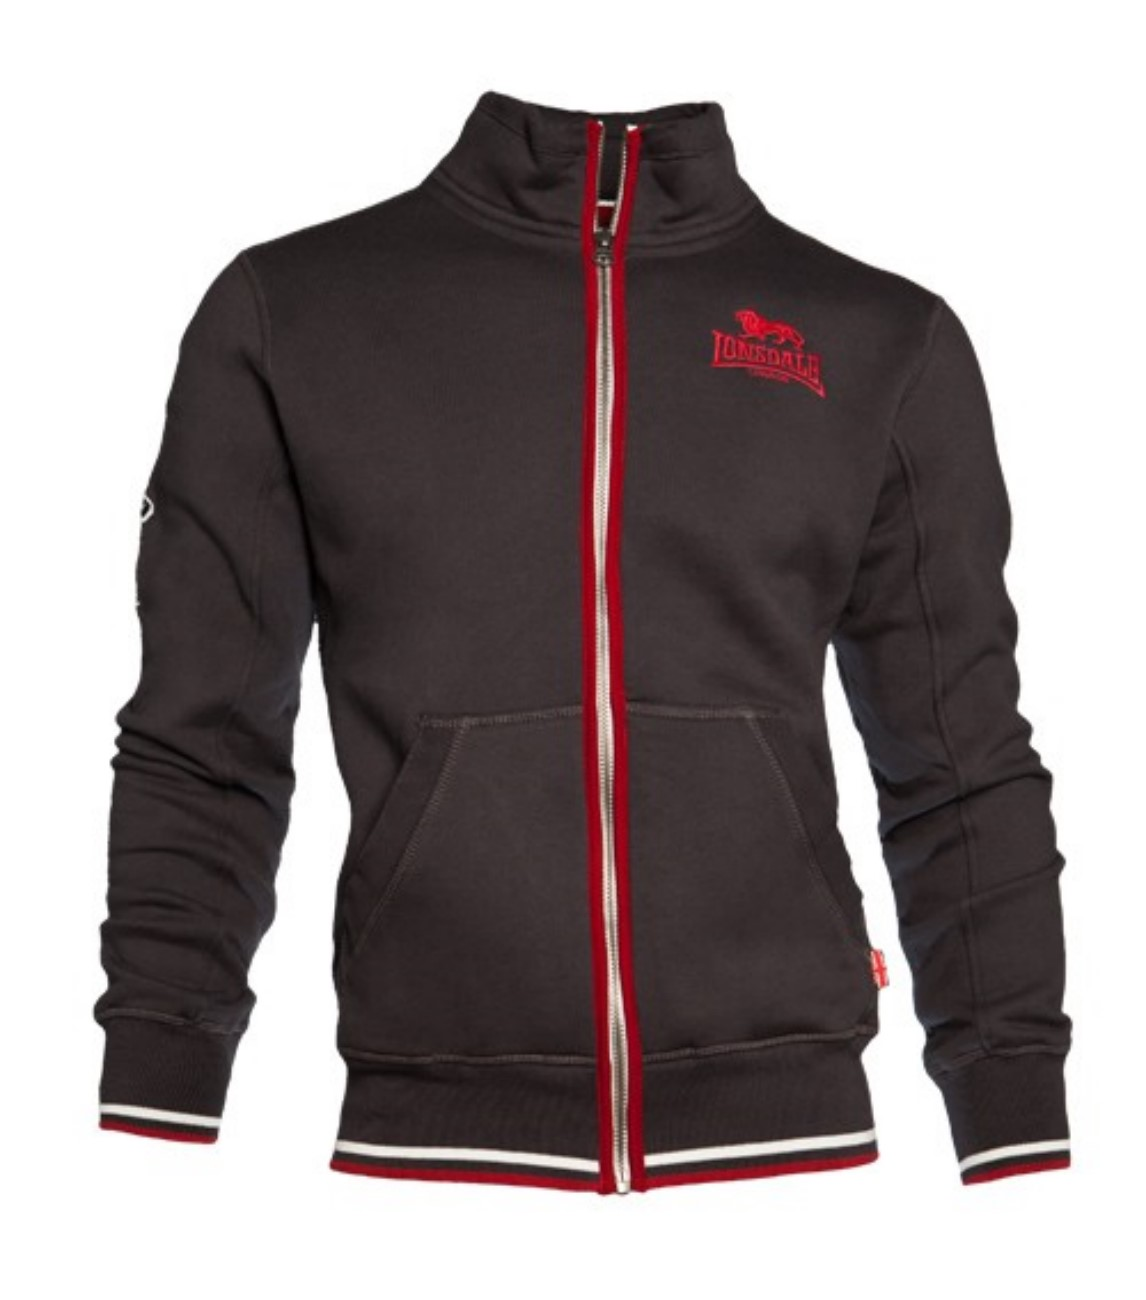 Lonsdale London Herren Sweatjacket 113349 WORTHING Zipsweat